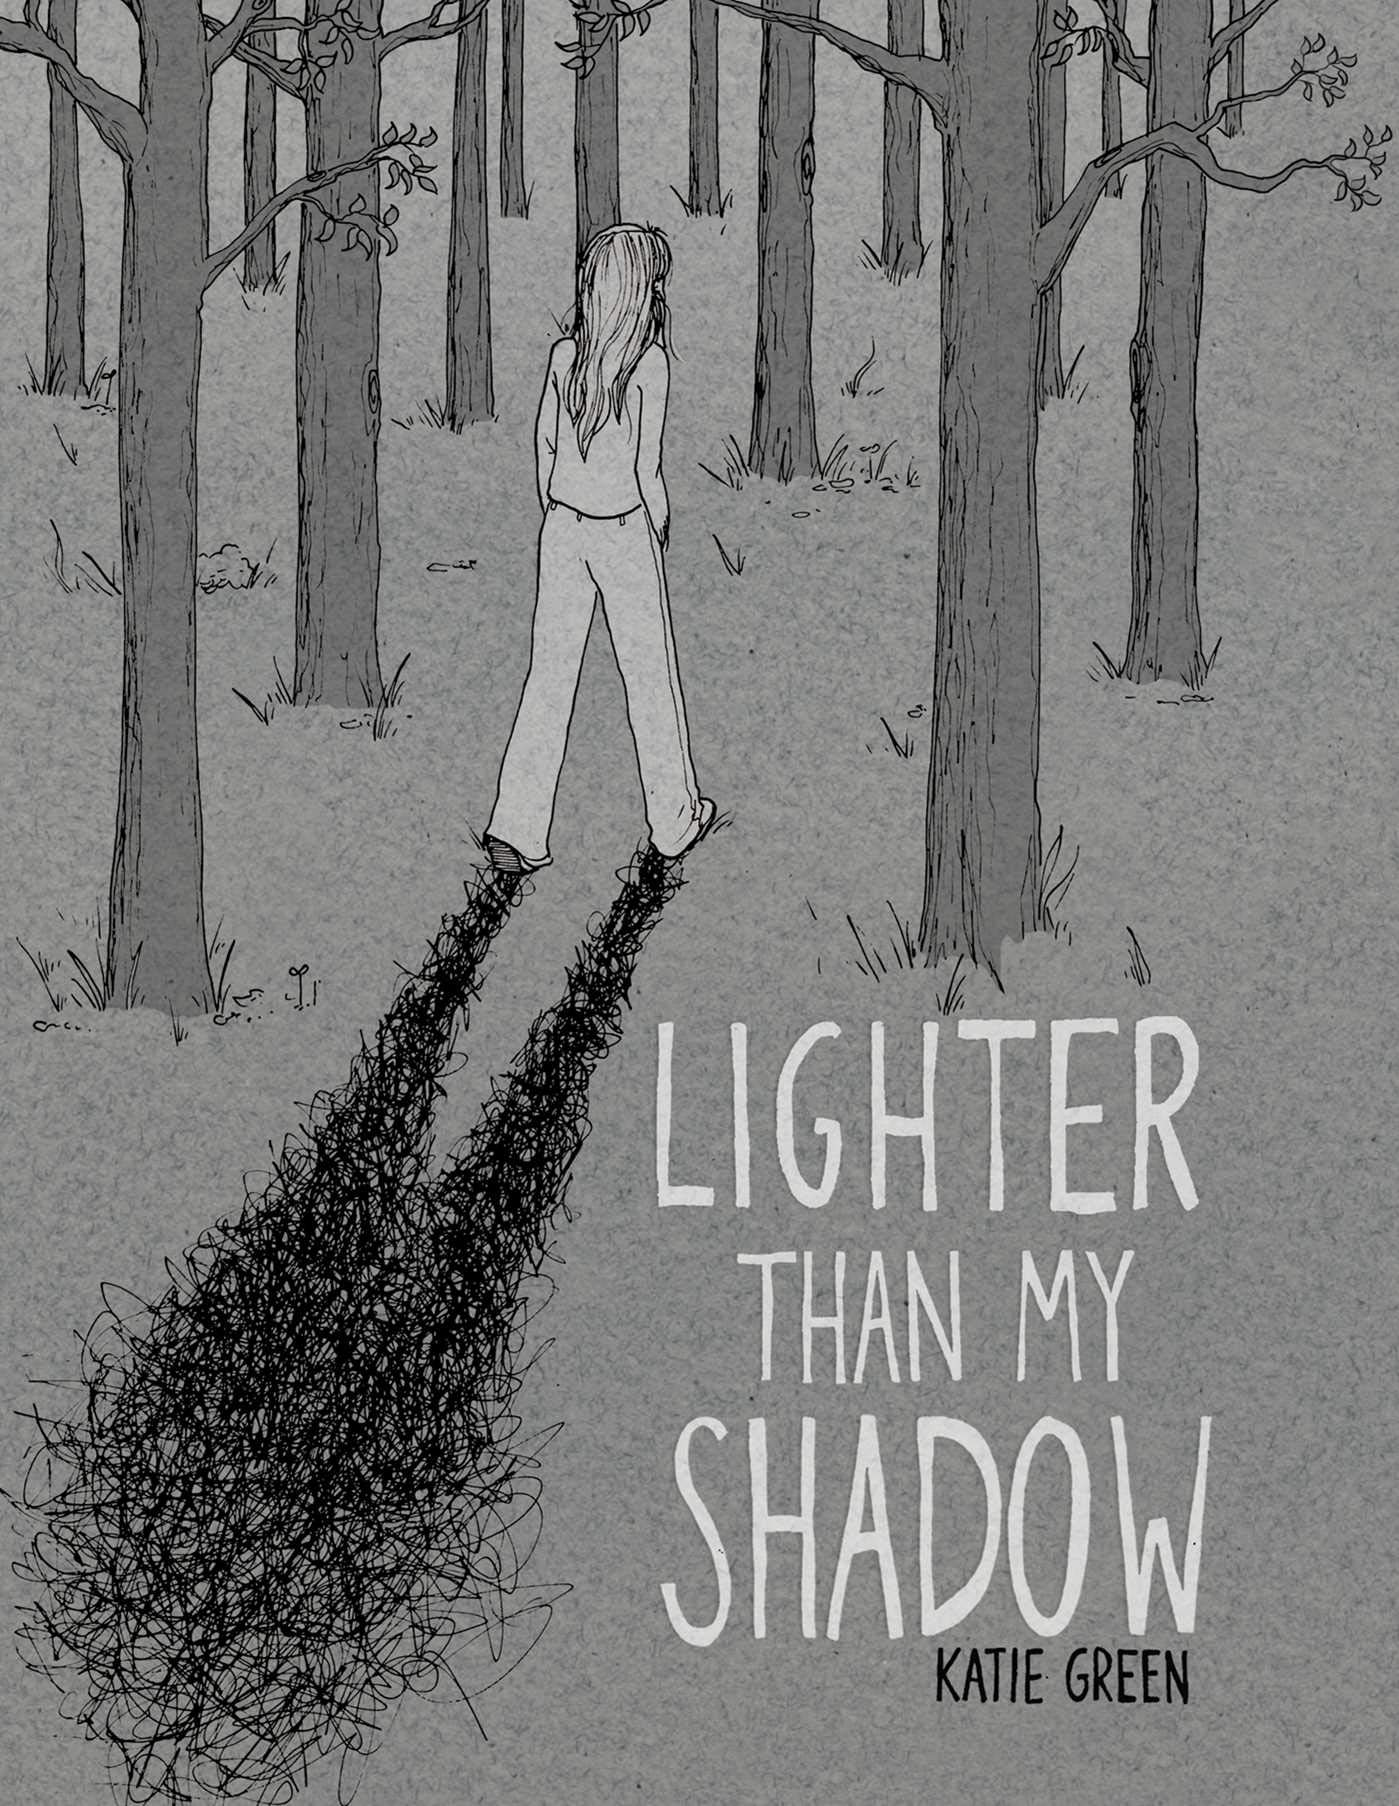 Amazon.com: Lighter Than My Shadow (9781941302415): Green, Katie: Books